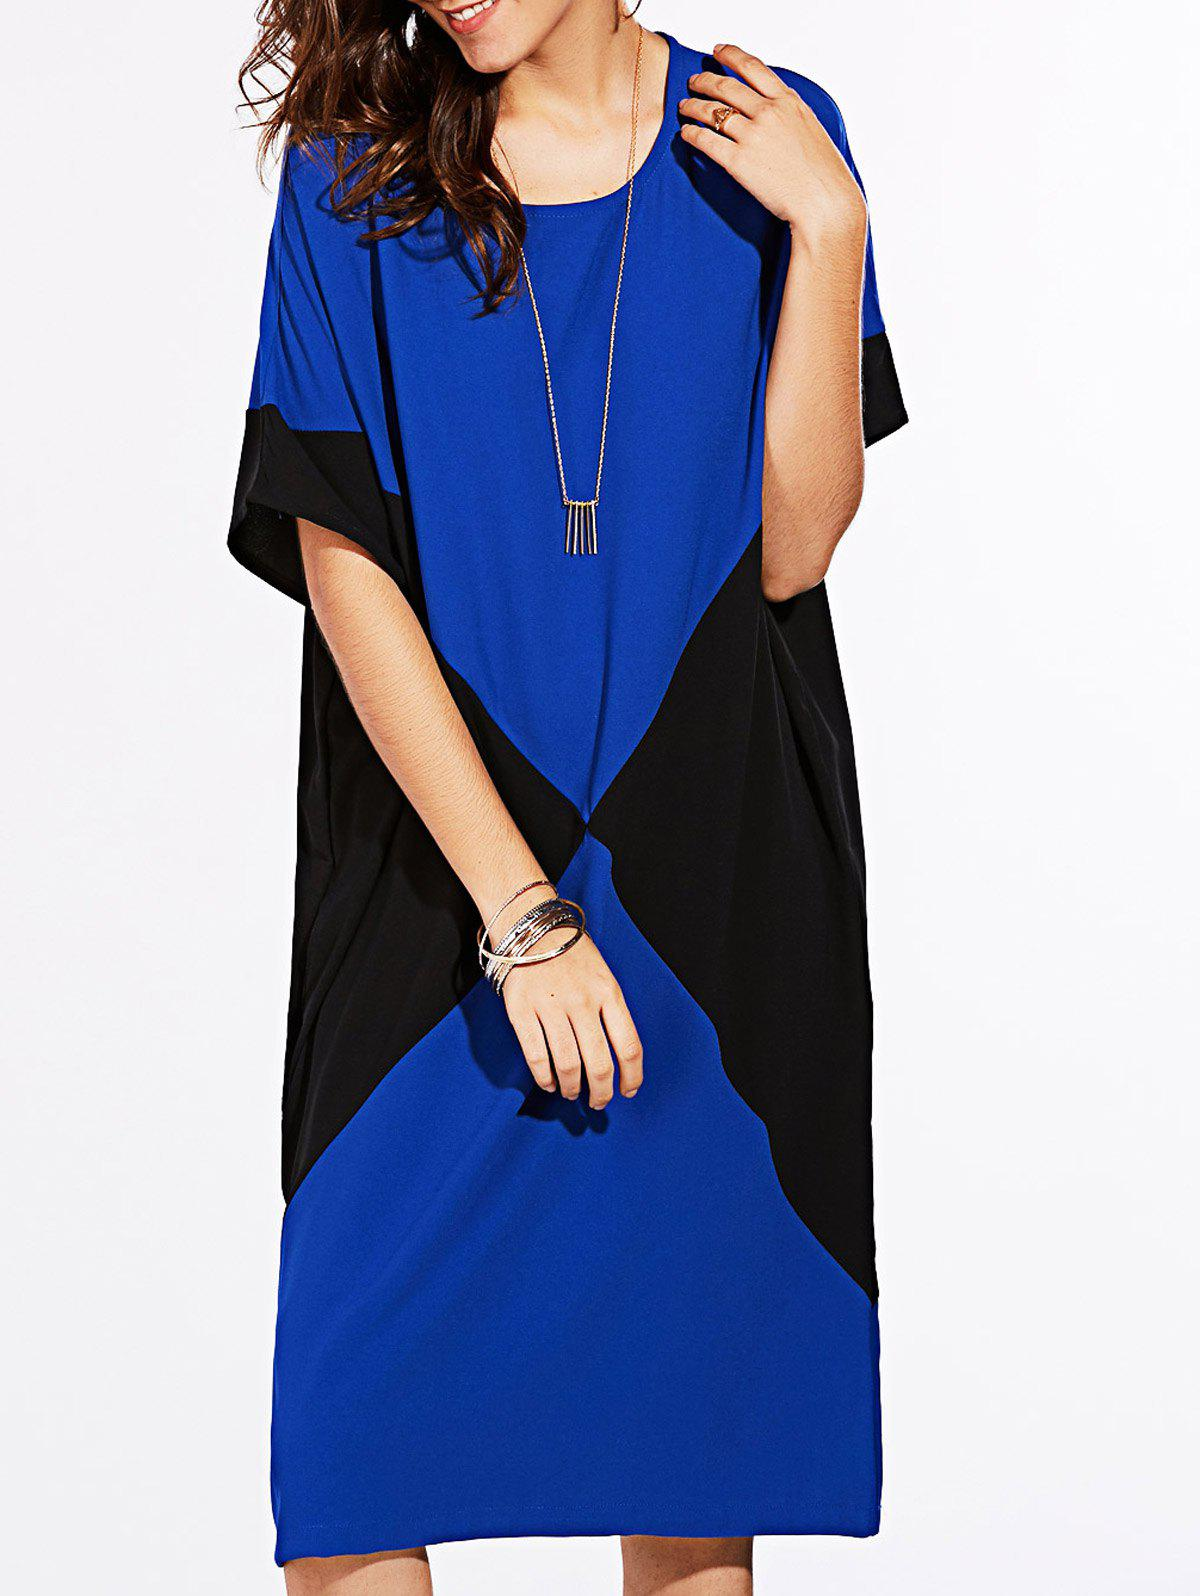 Trendy Loose-Fitting Color Block Women's Knee-Length Dress - SAPPHIRE BLUE ONE SIZE(FIT SIZE XS TO M)